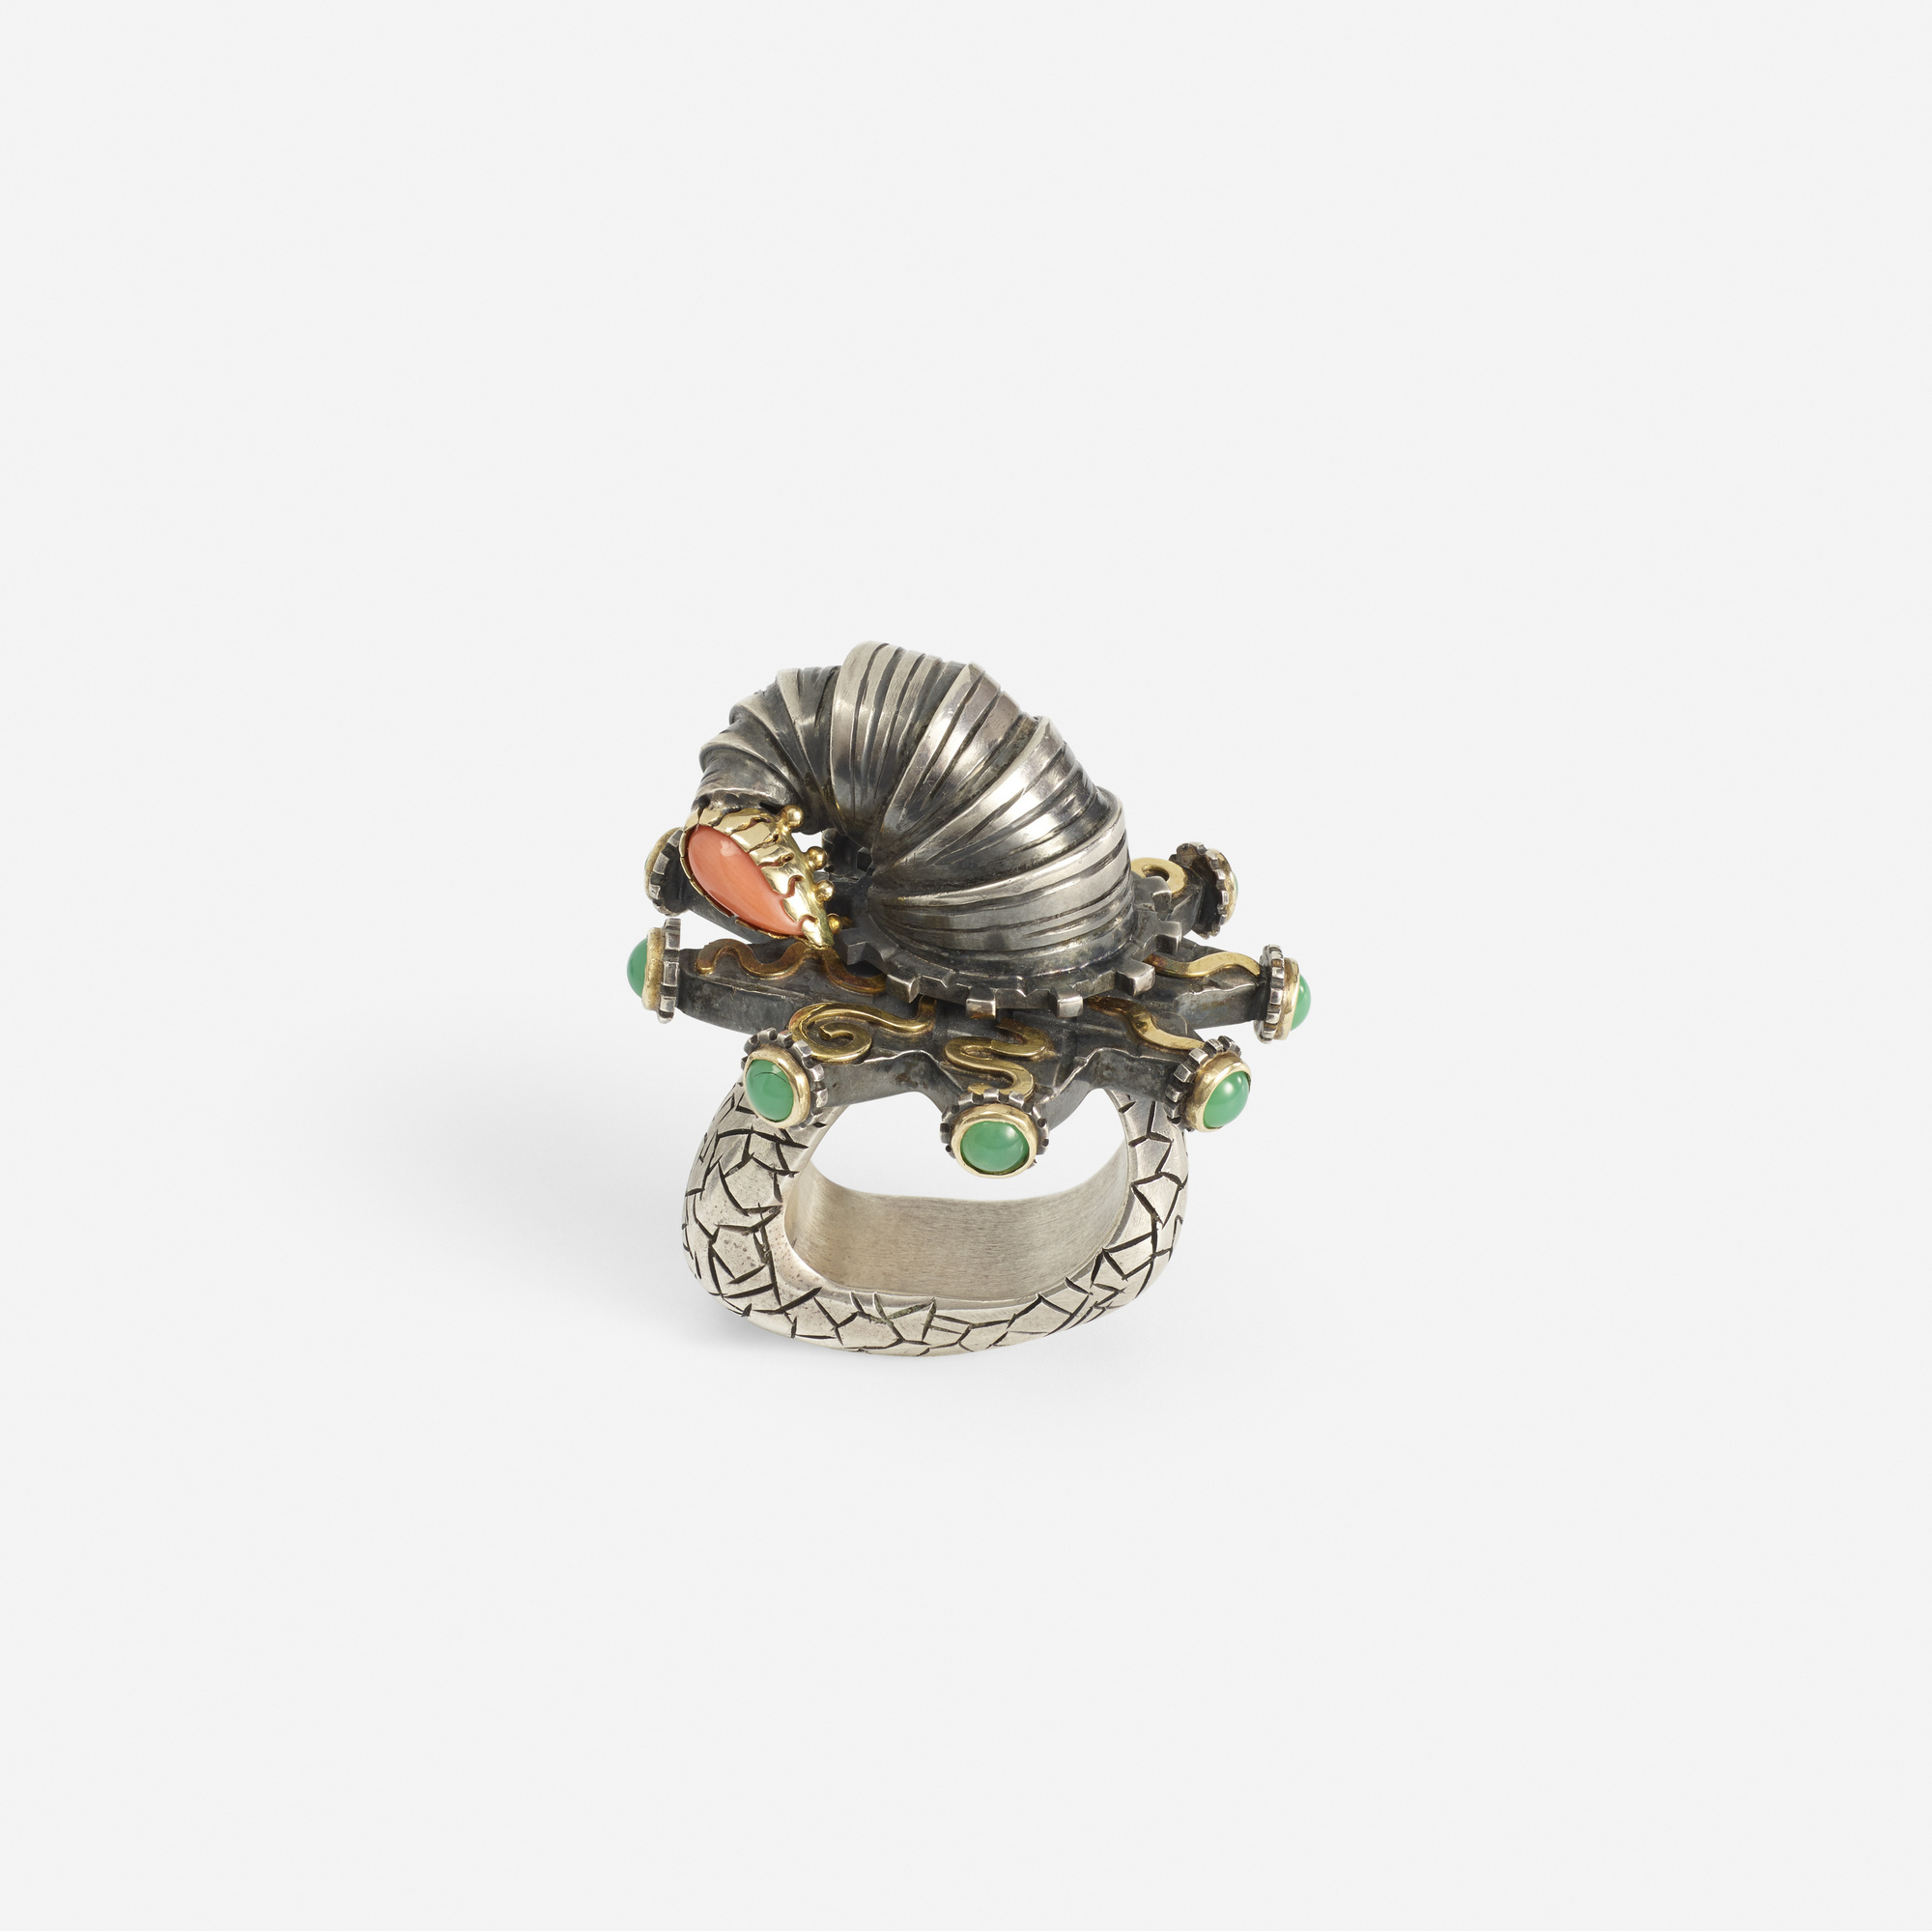 290: Sabine Klarner / A sterling silver, gold, chrysoprase and coral ring (1 of 1)